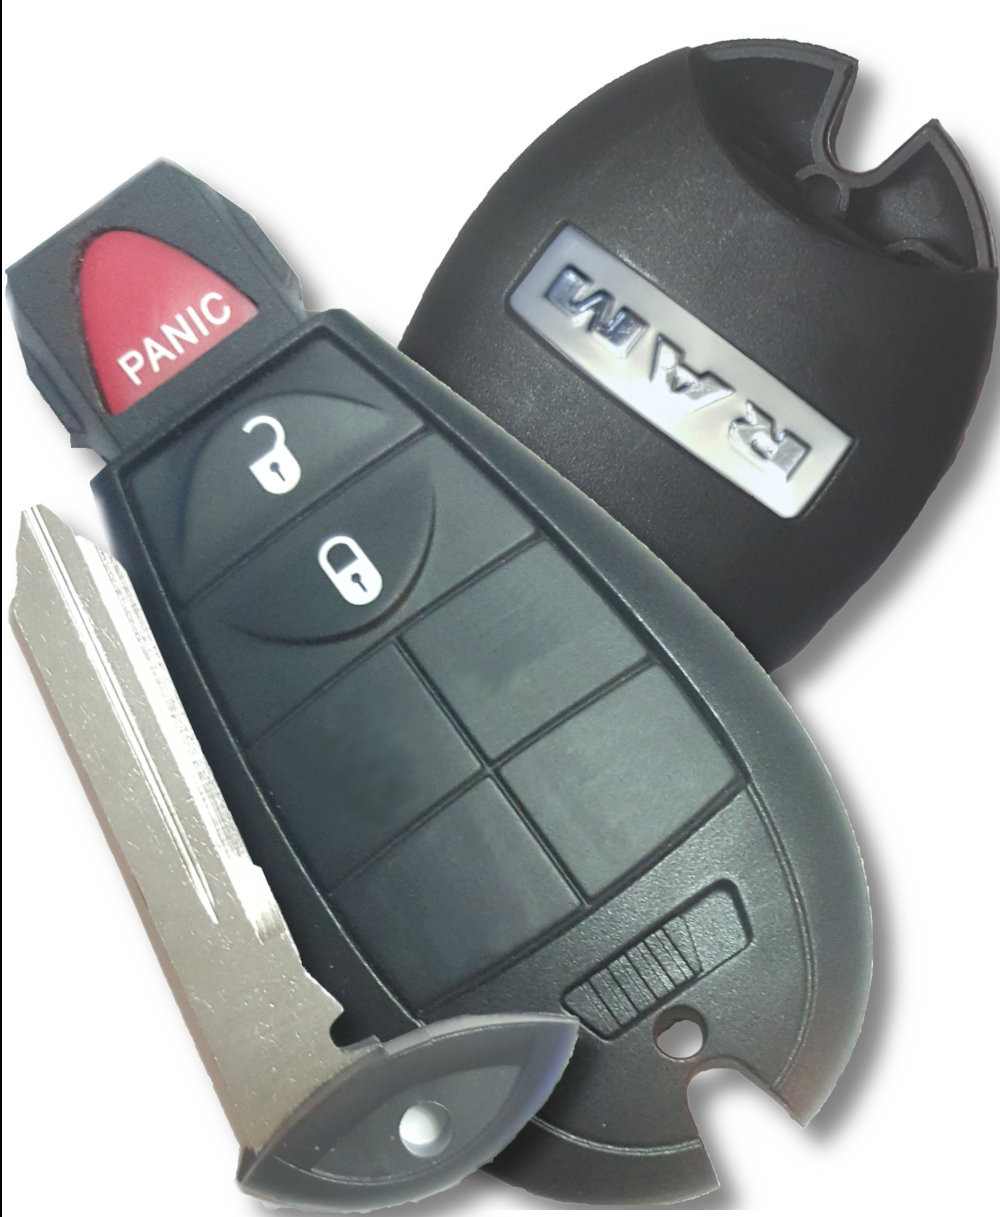 Car Keys Express Aftermarket Replacement OEM FOBIK for Chrysler//Dodge//Jeep with Remote Start 4 Button